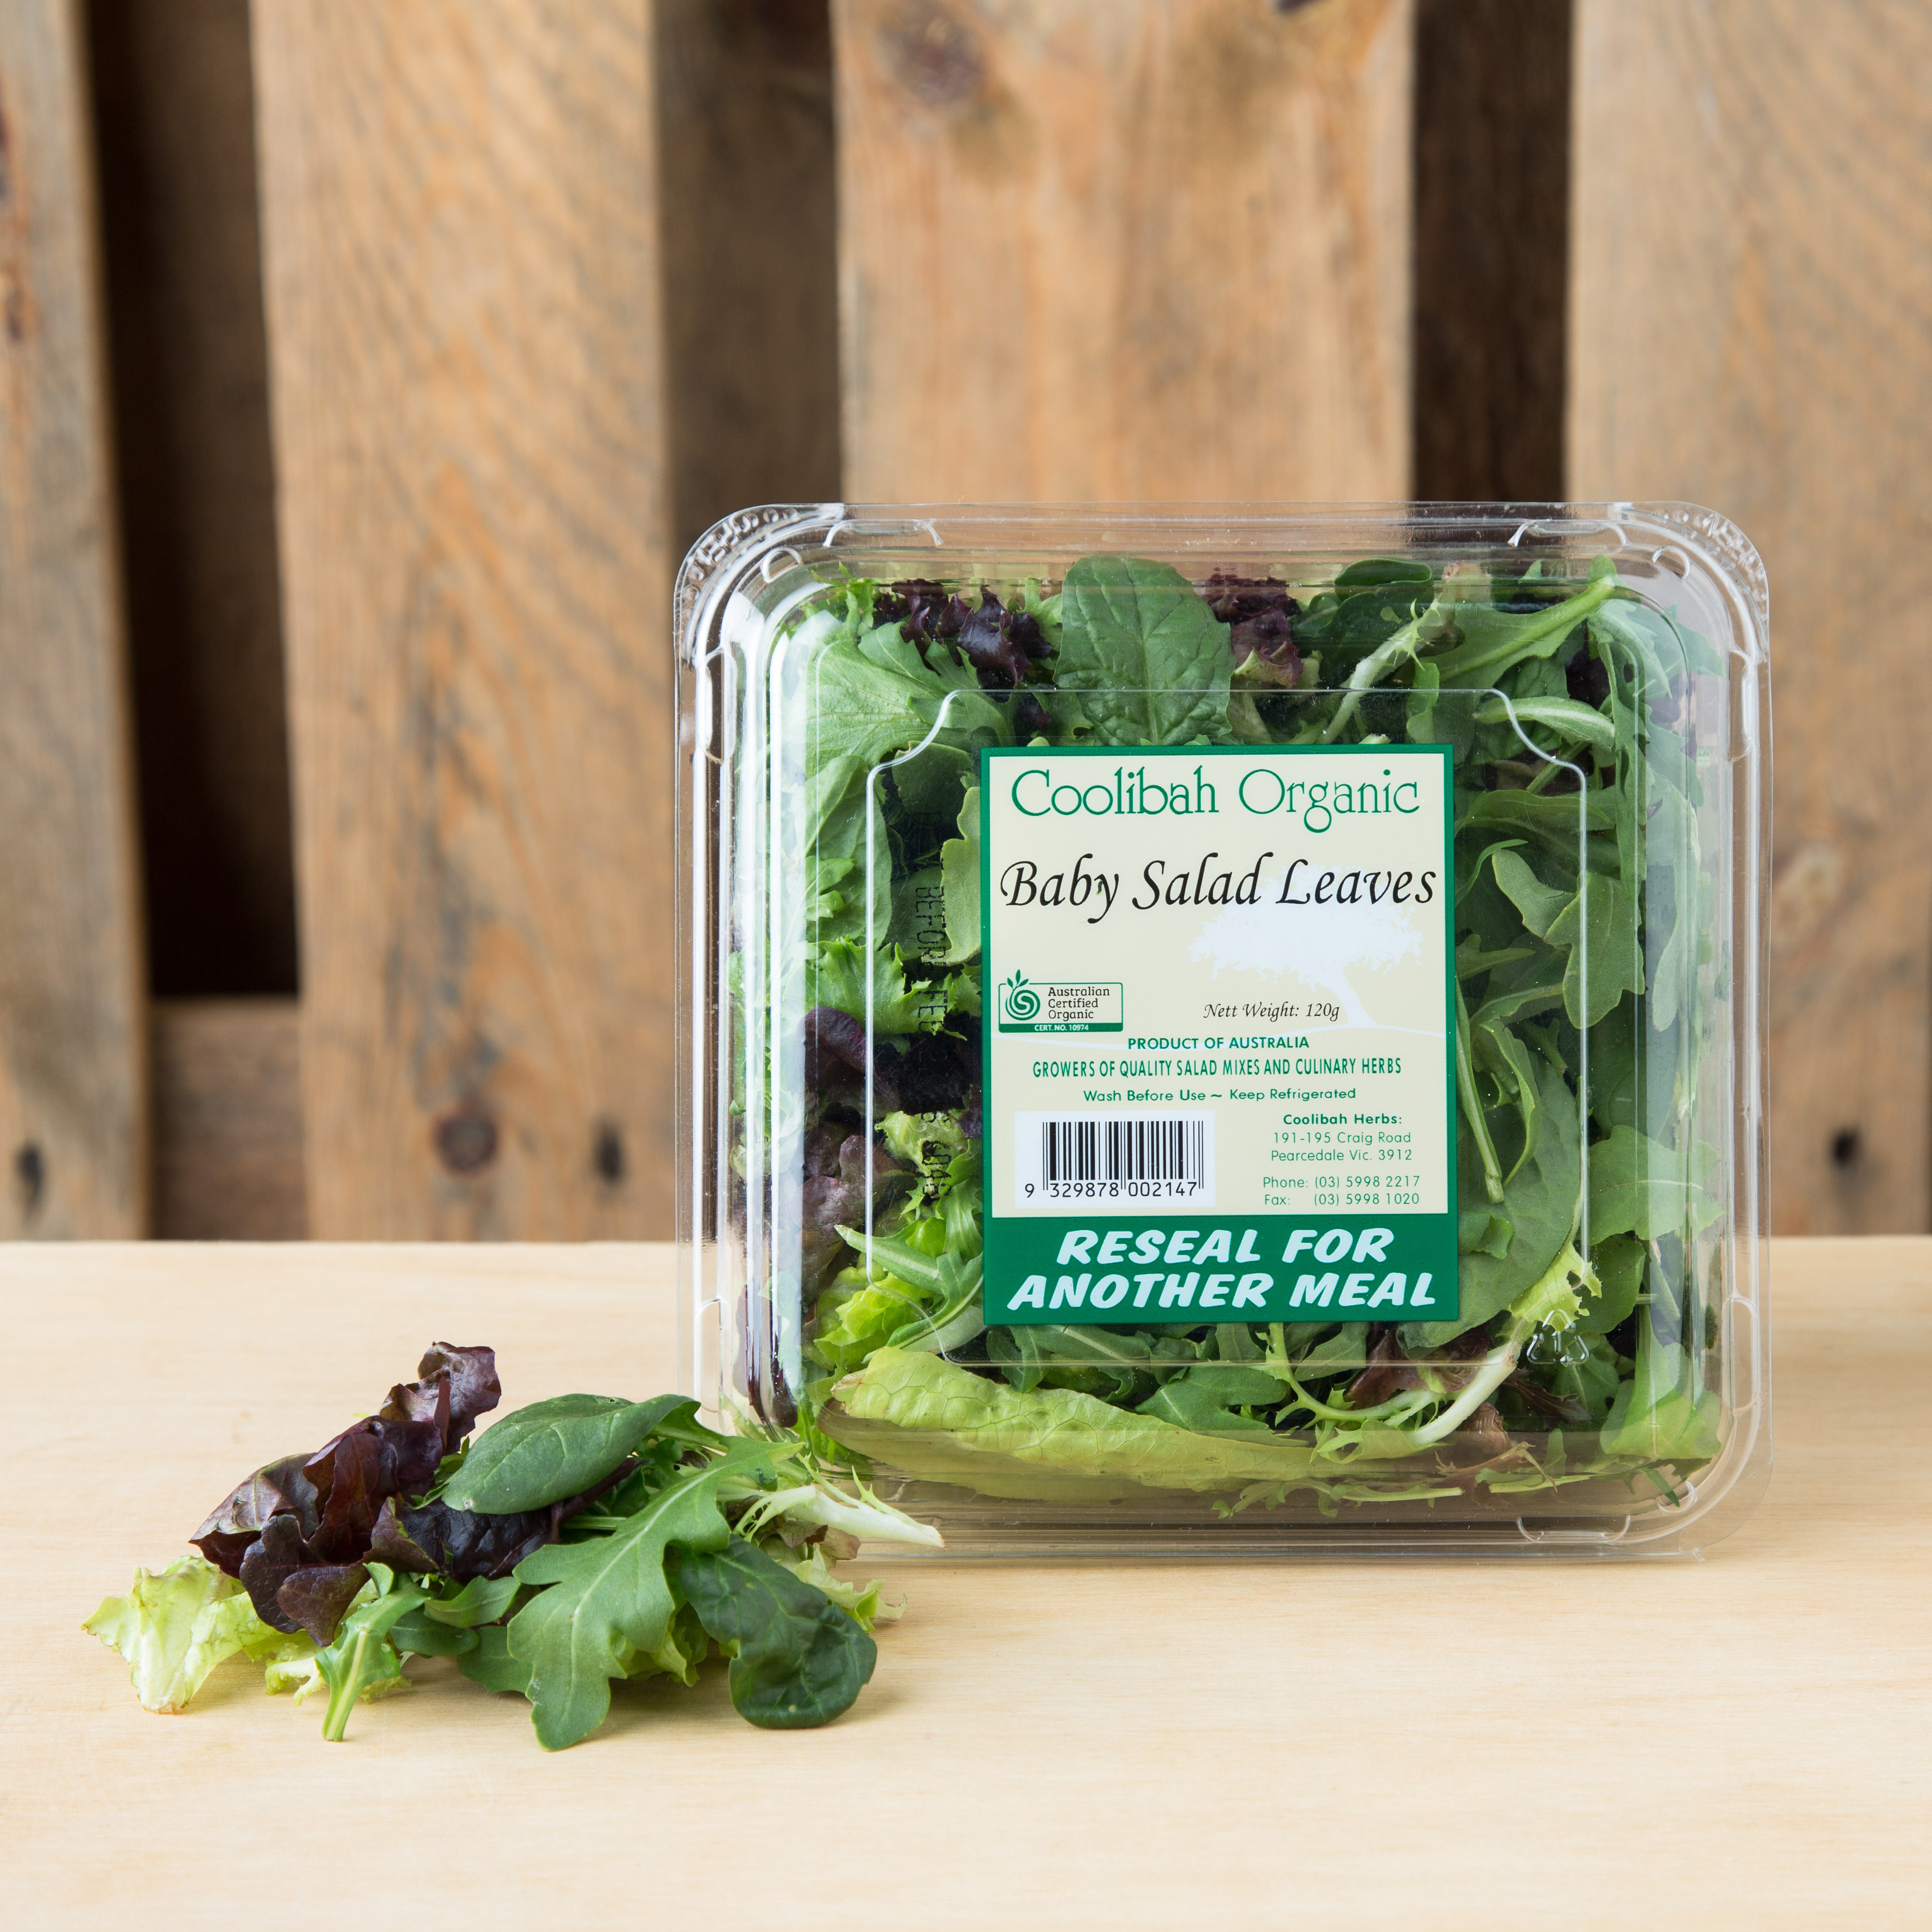 Organic Salad Mix Coolibah Singapore S Healthiest Online Grocery Directly From The World Best Farms And Foodmakers A Marketplace For